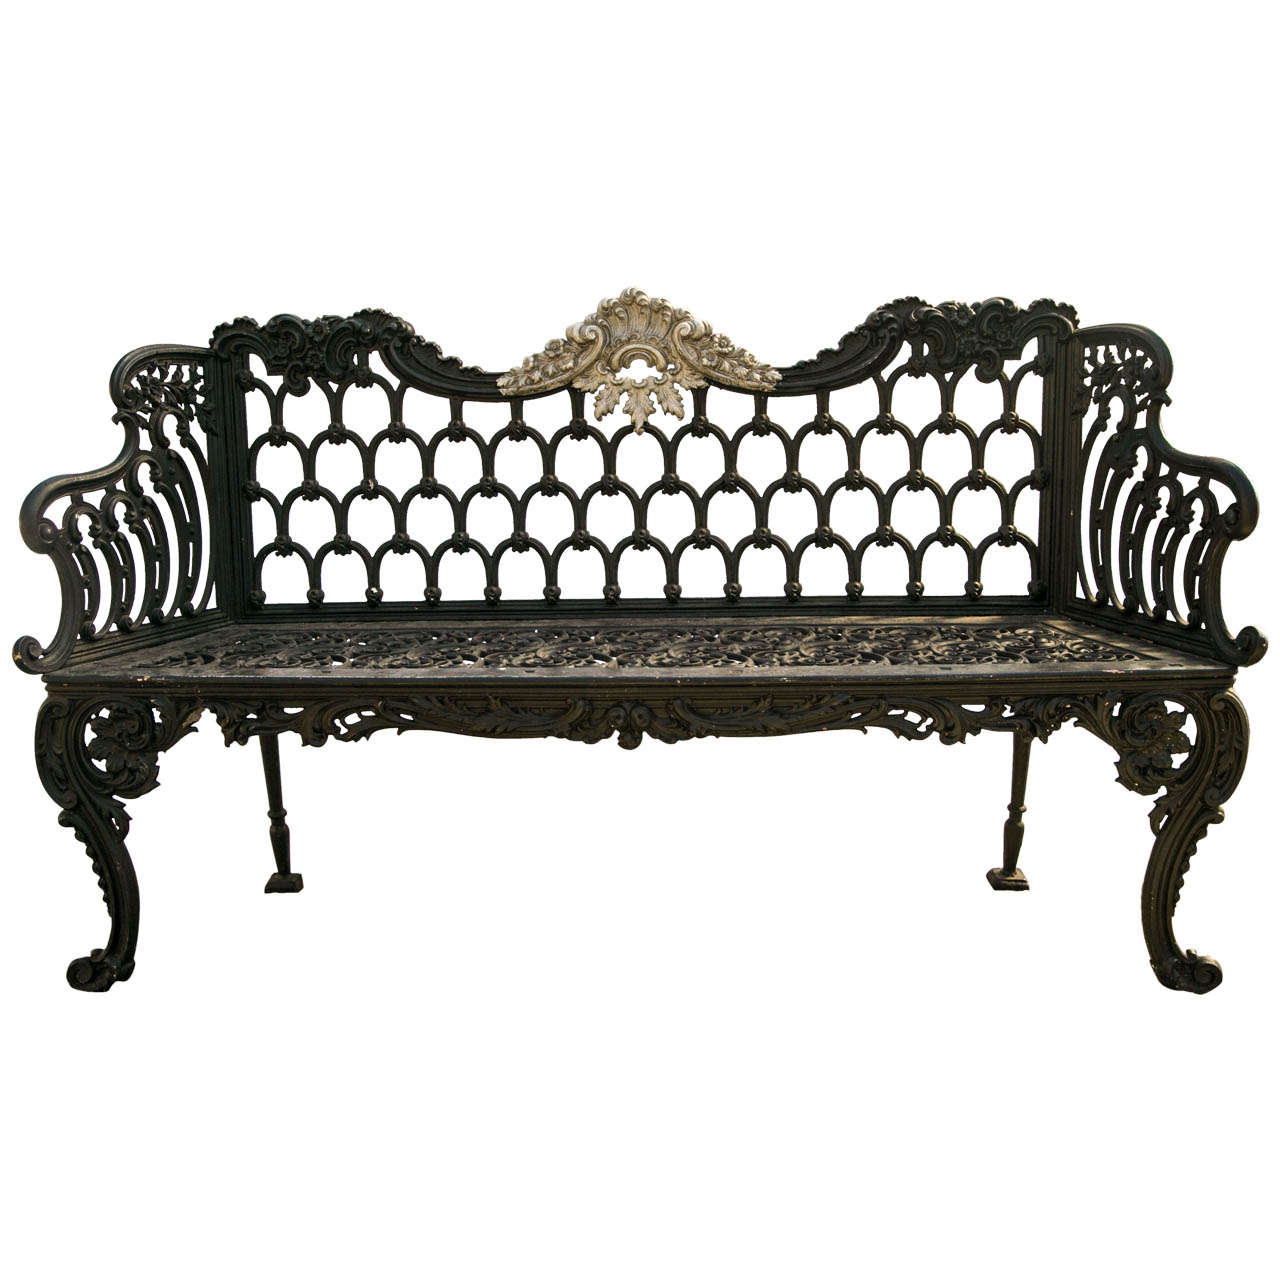 Cast Of Benched : Scottish cast iron bench by carron at stdibs